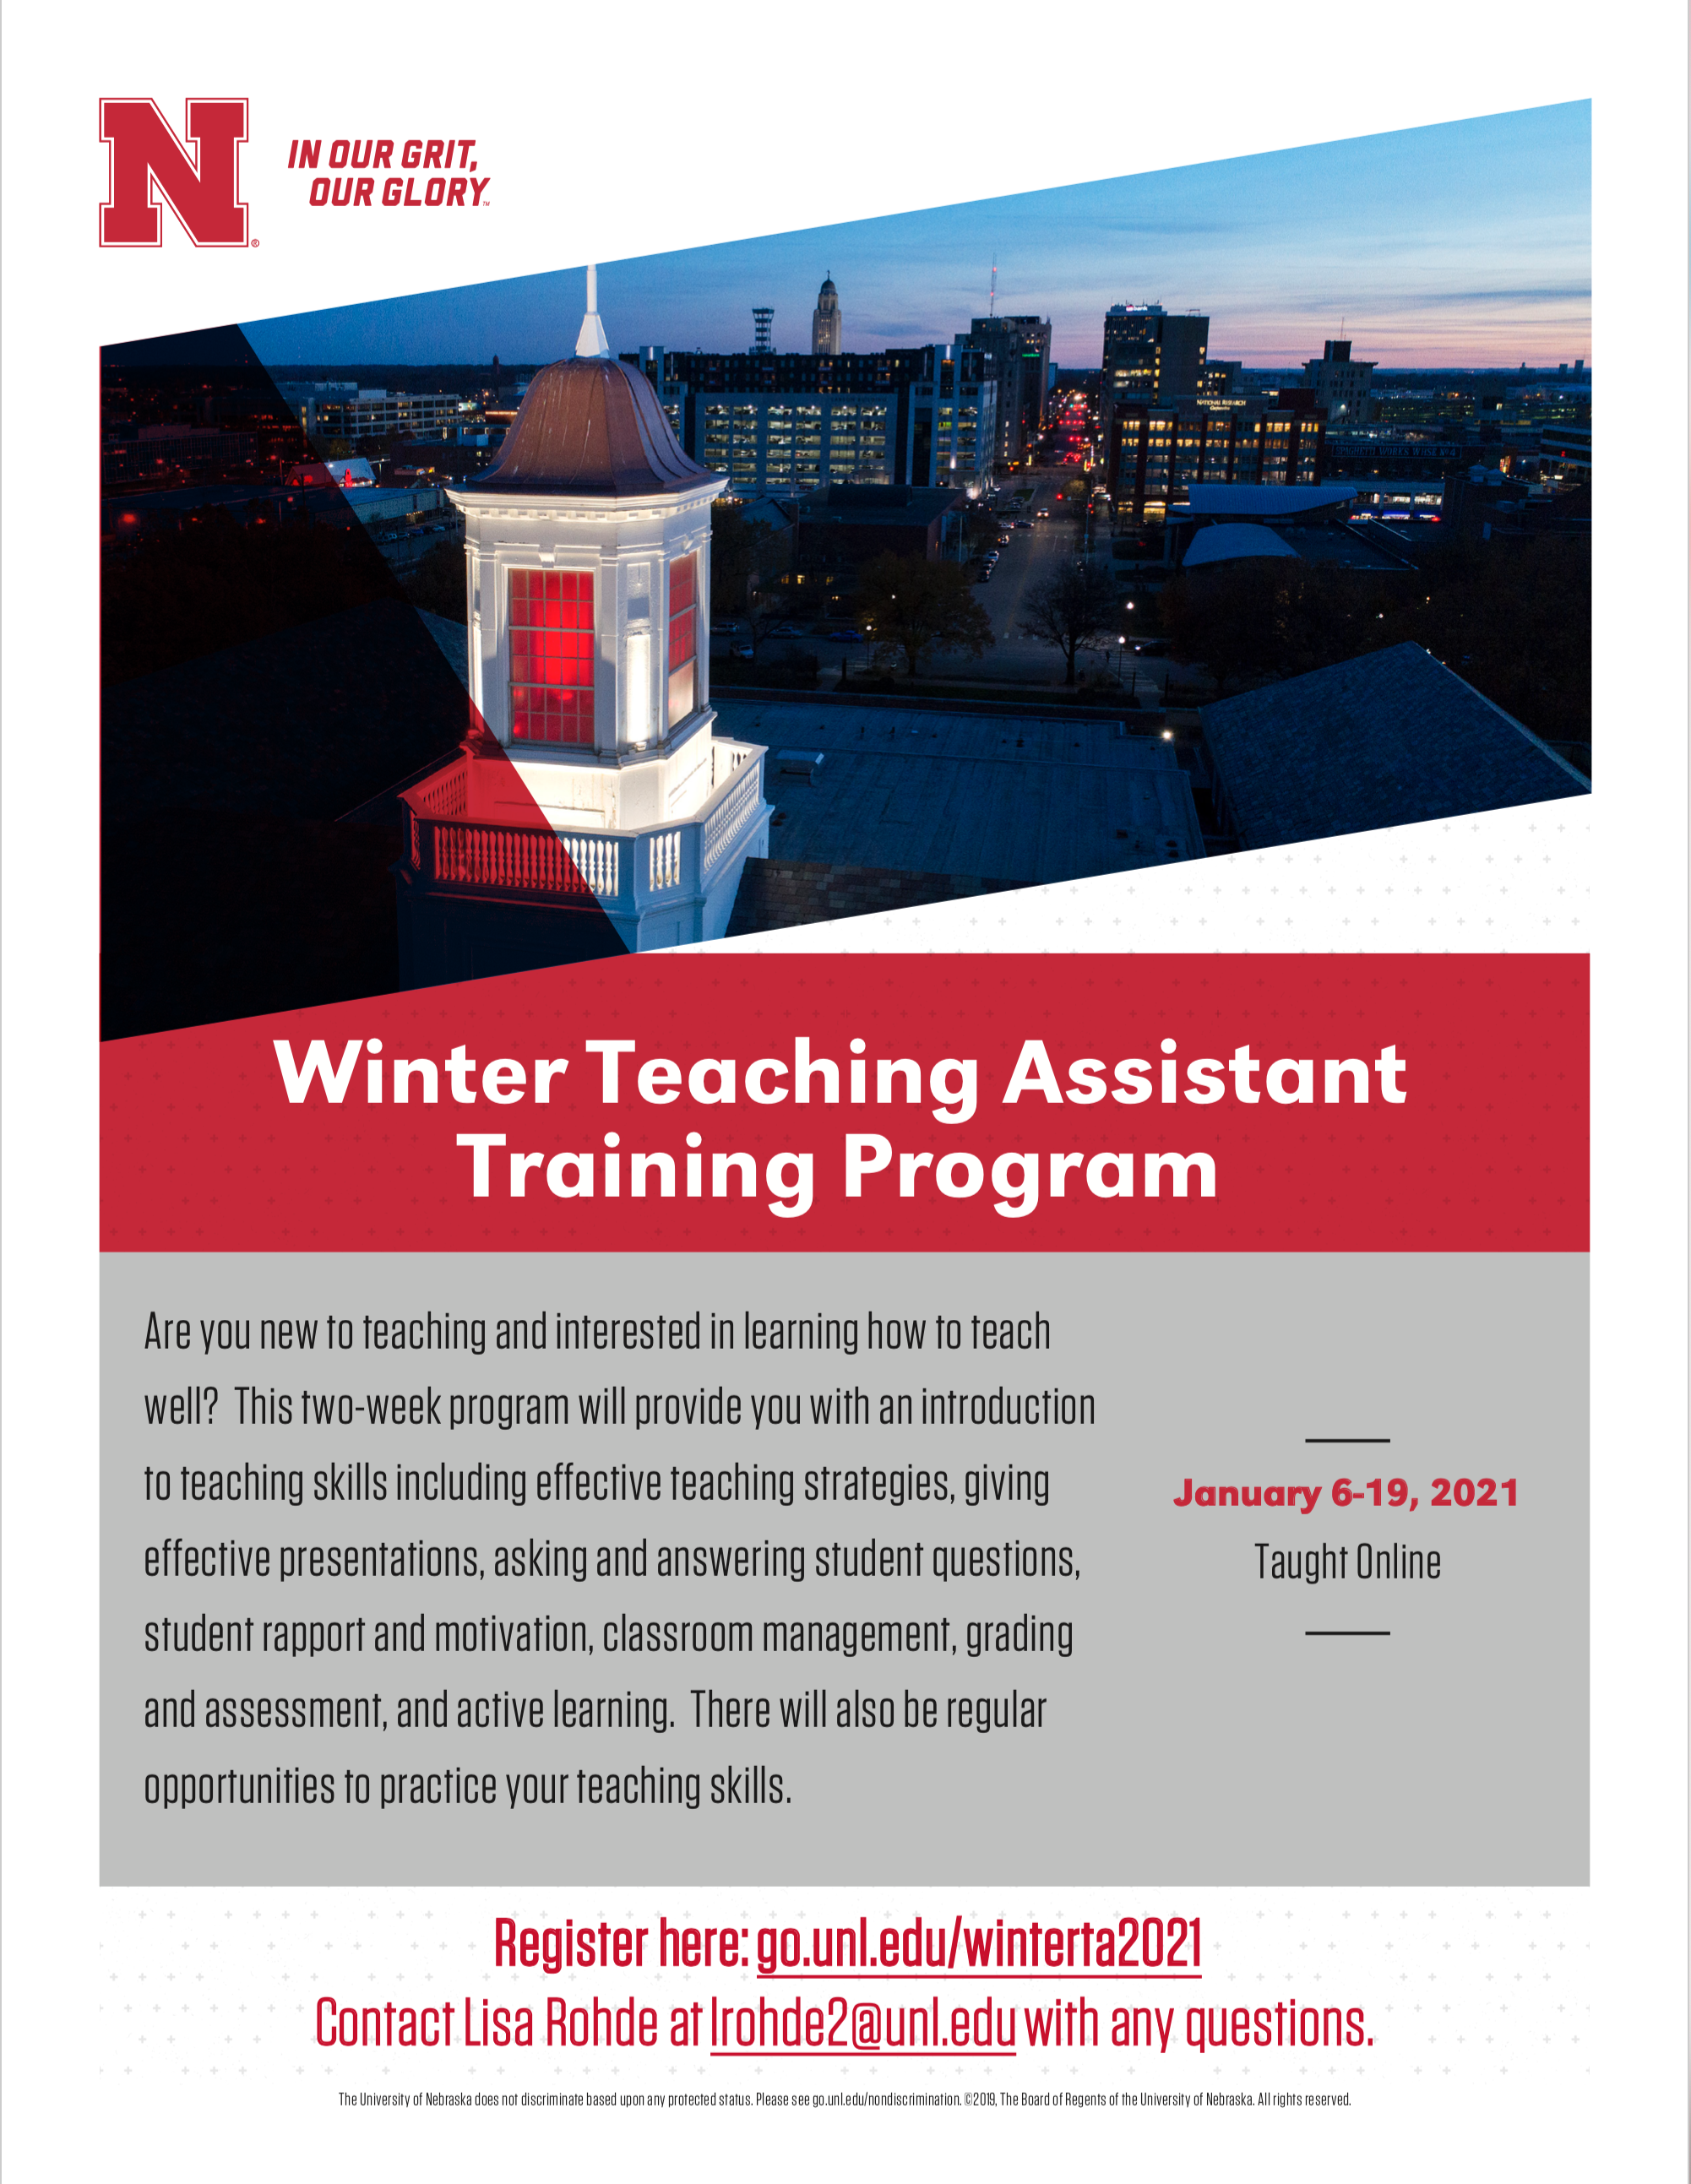 From January 6-19, 2021, the Office of Graduate Studies will offer a 2-week program to prepare TAs for the classroom. This program is designed for newer or beginning TAs or anyone interested in learning more about teaching even if they are not currently i